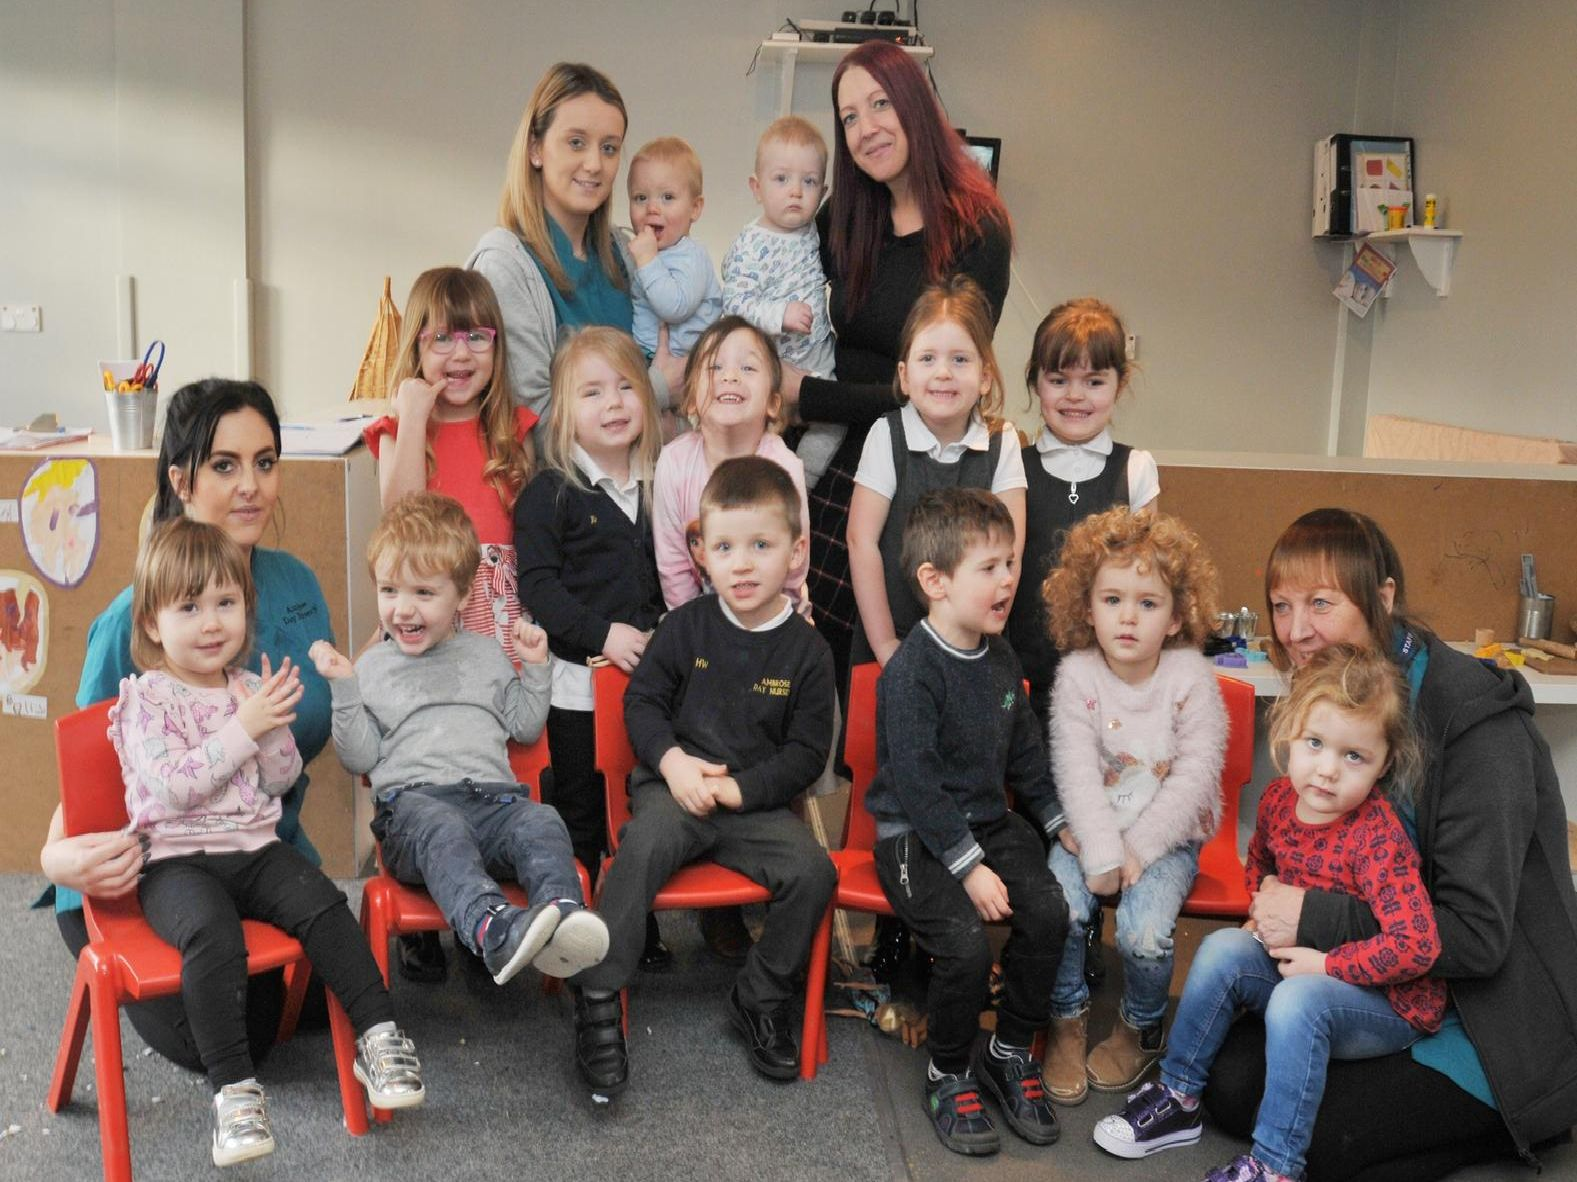 Little tots learn lots at Ambrose Day Nursery where it's all fun and games.